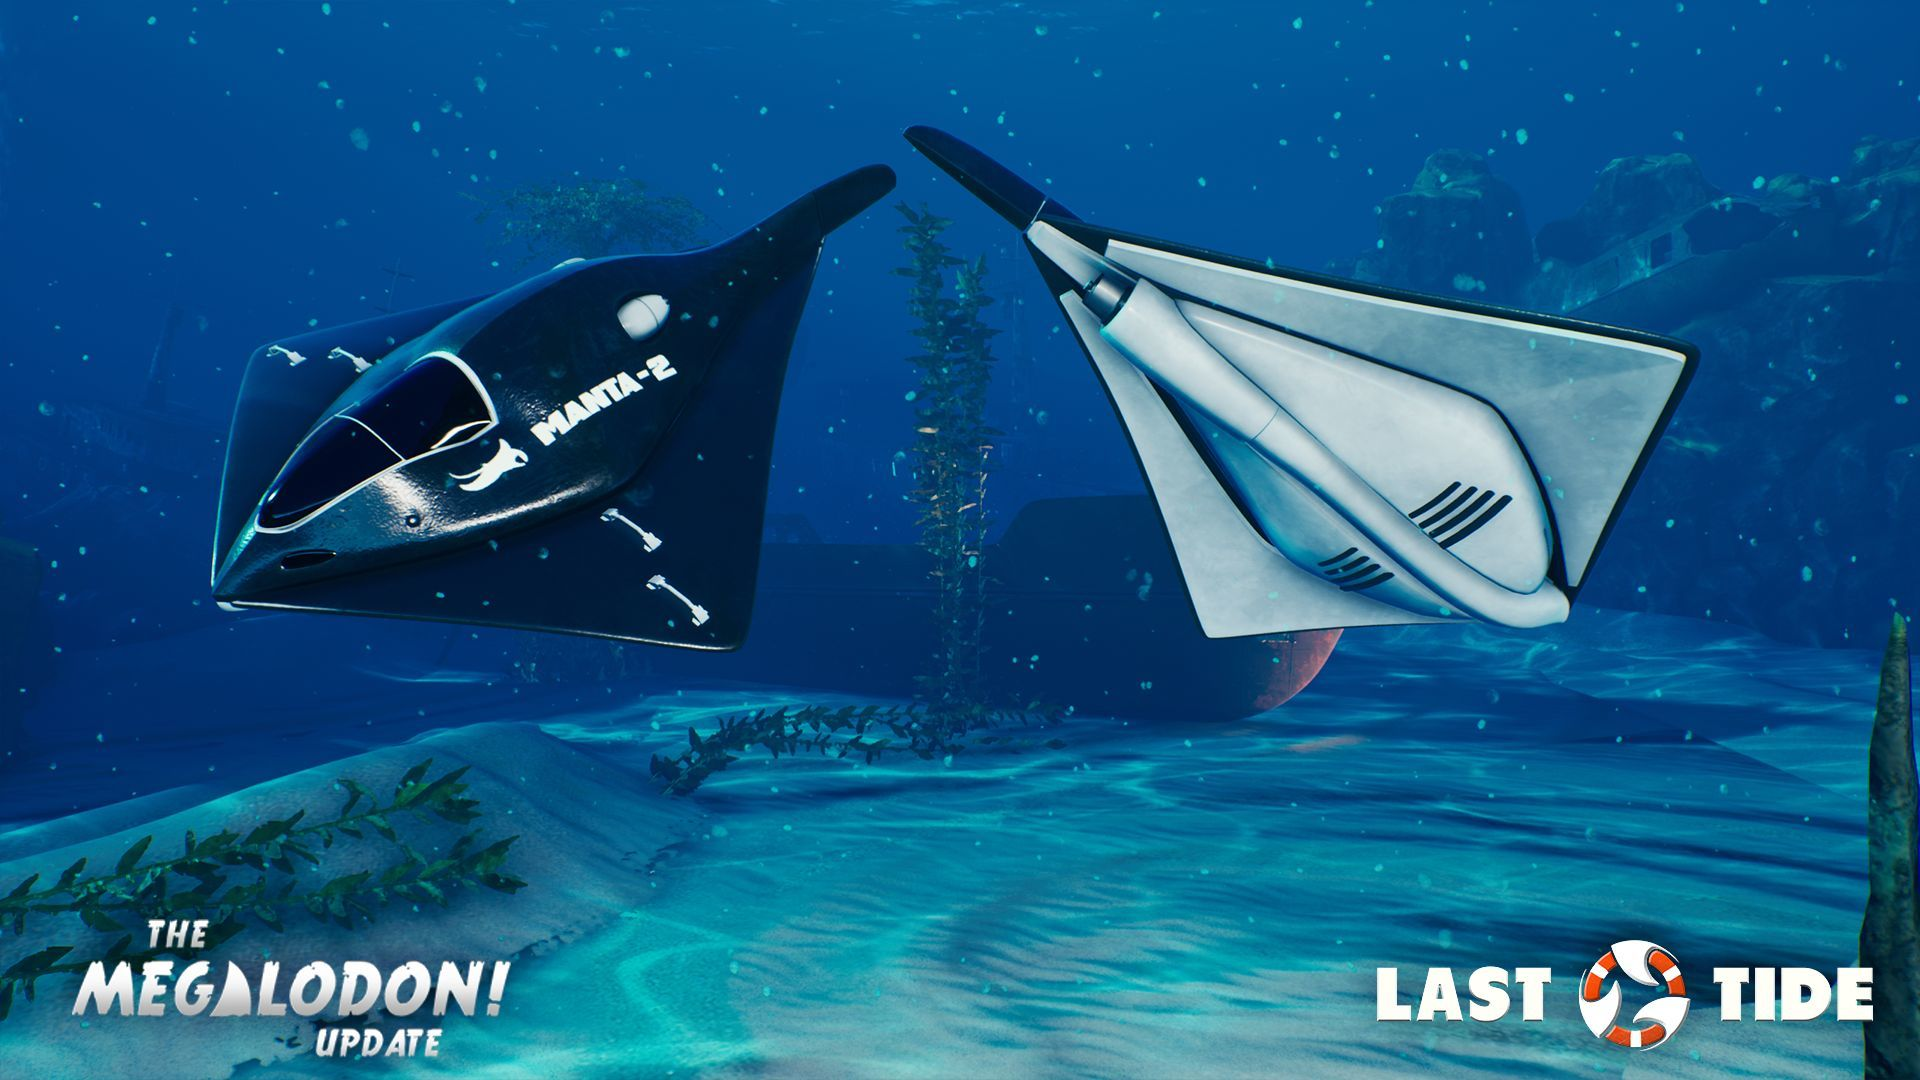 Steam :: Last Tide :: Last Tide: MEGALODON!